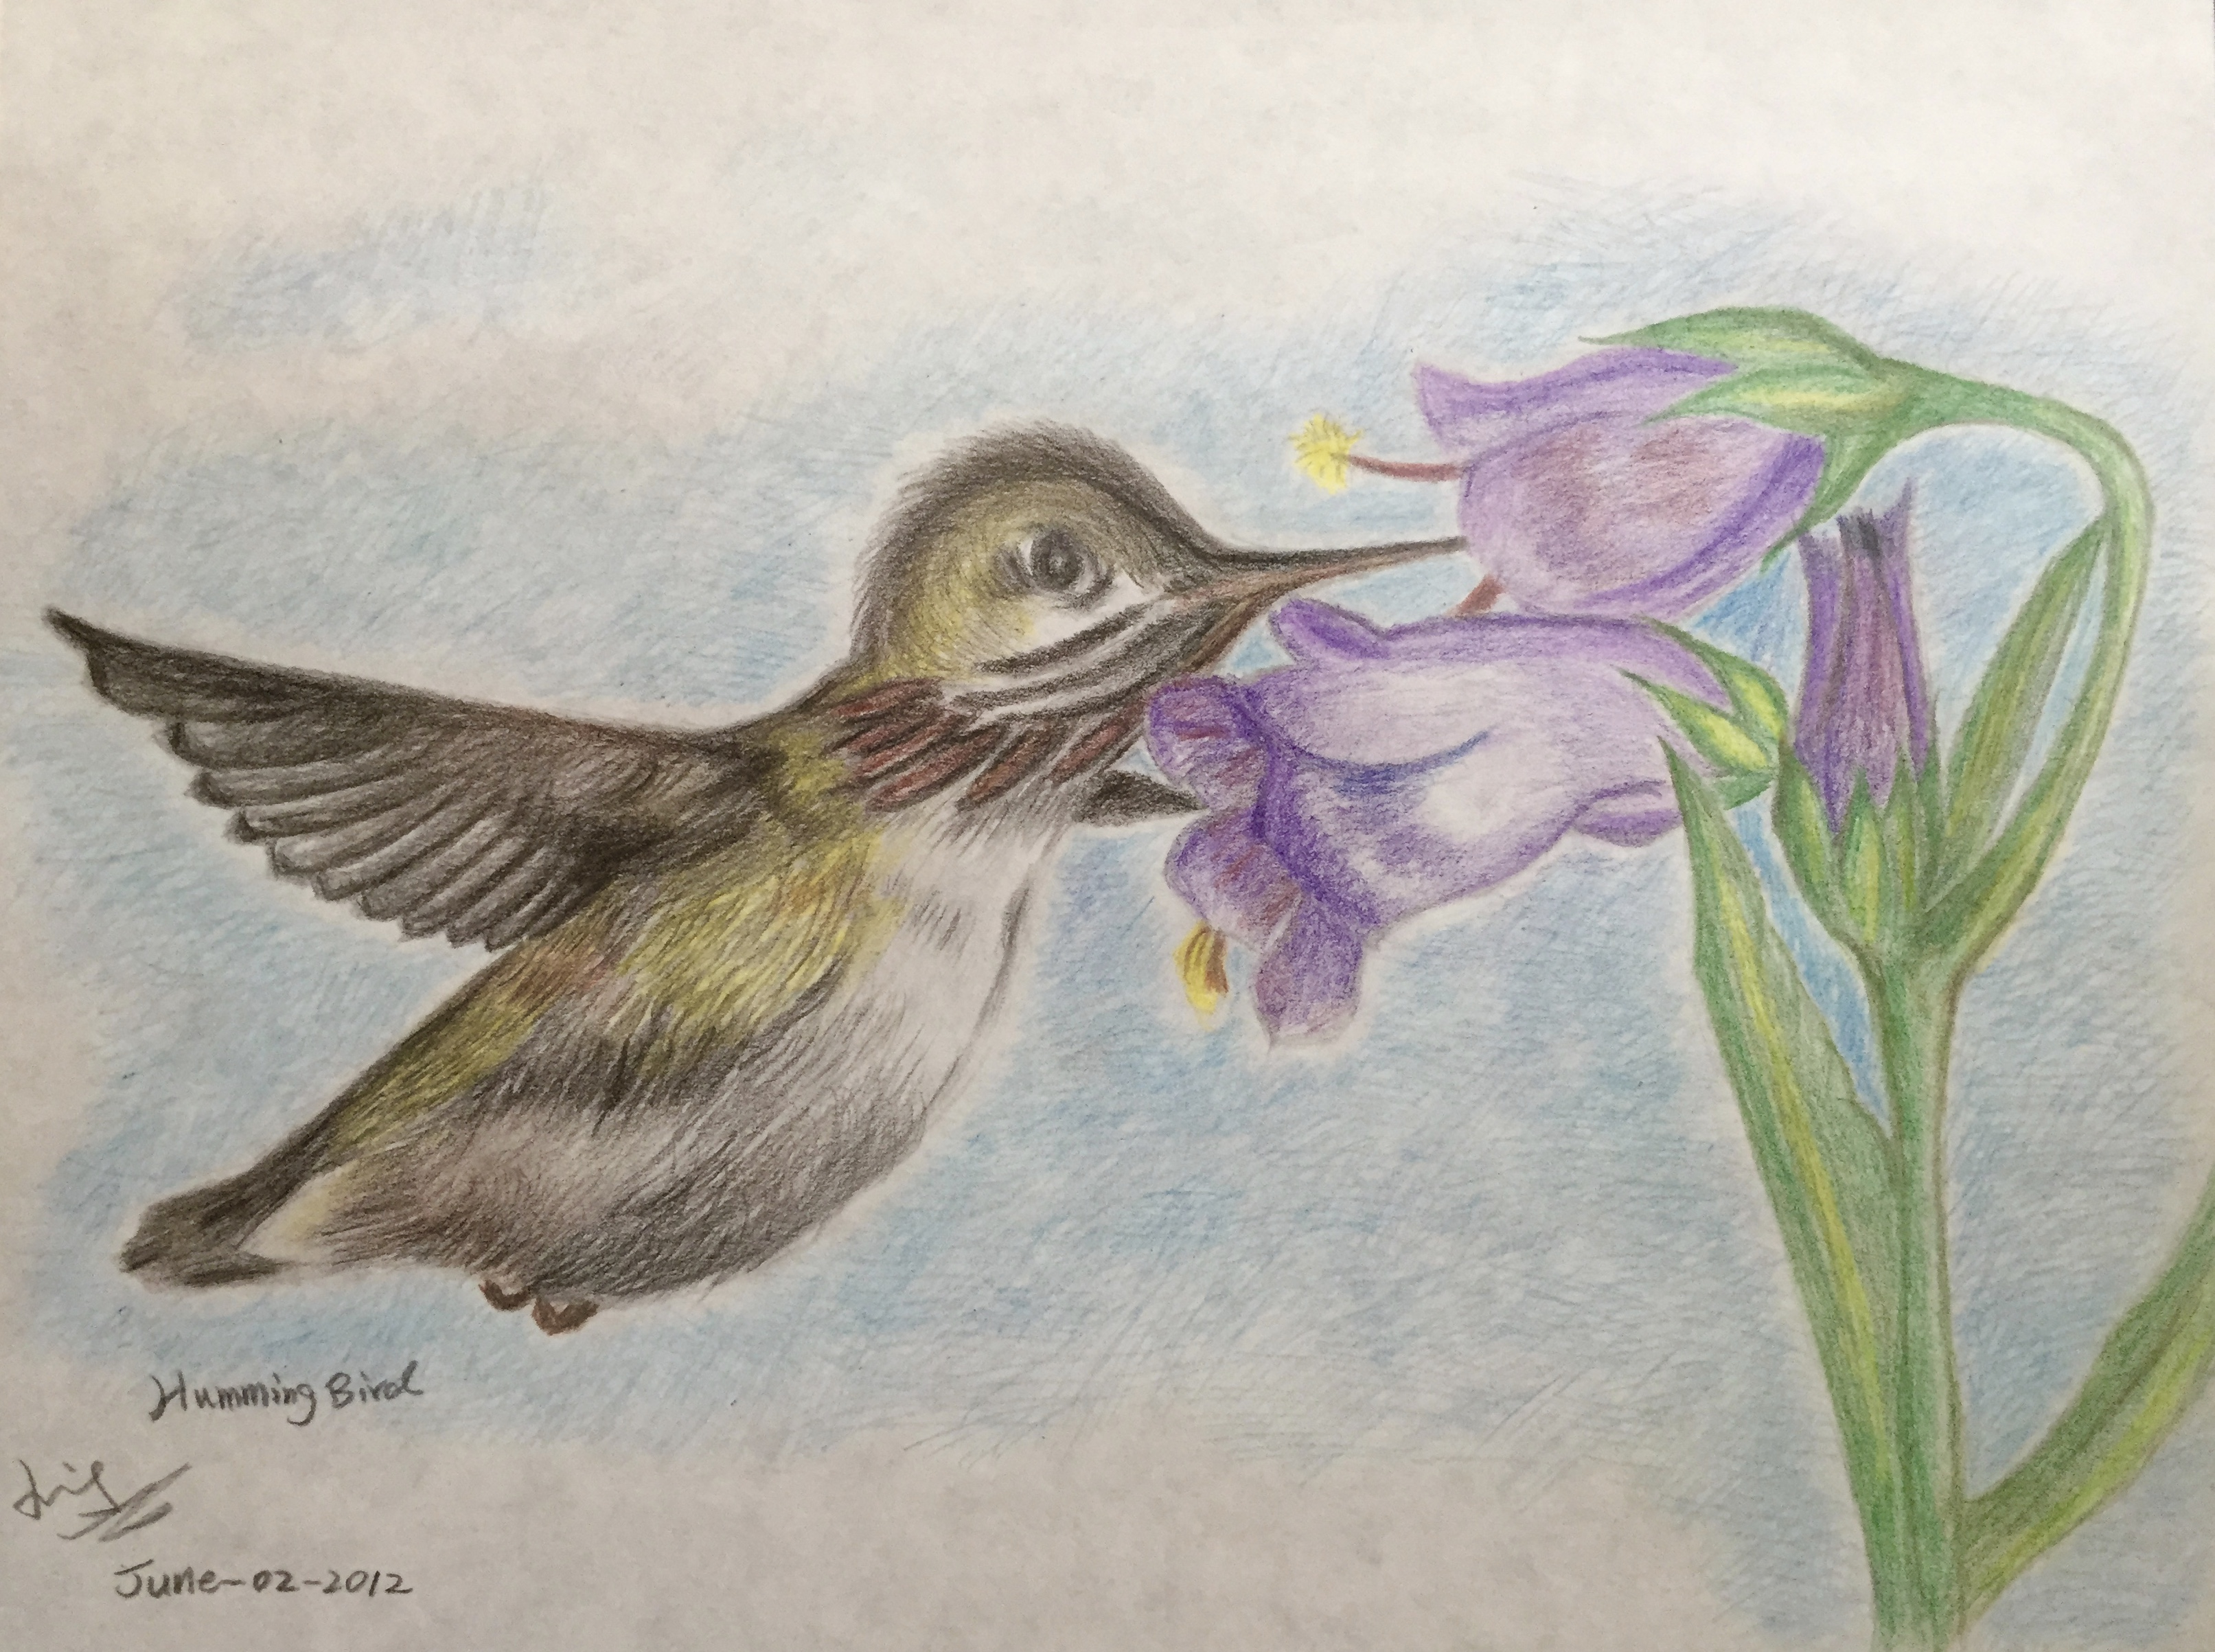 colour pencil drawing of a humming bird